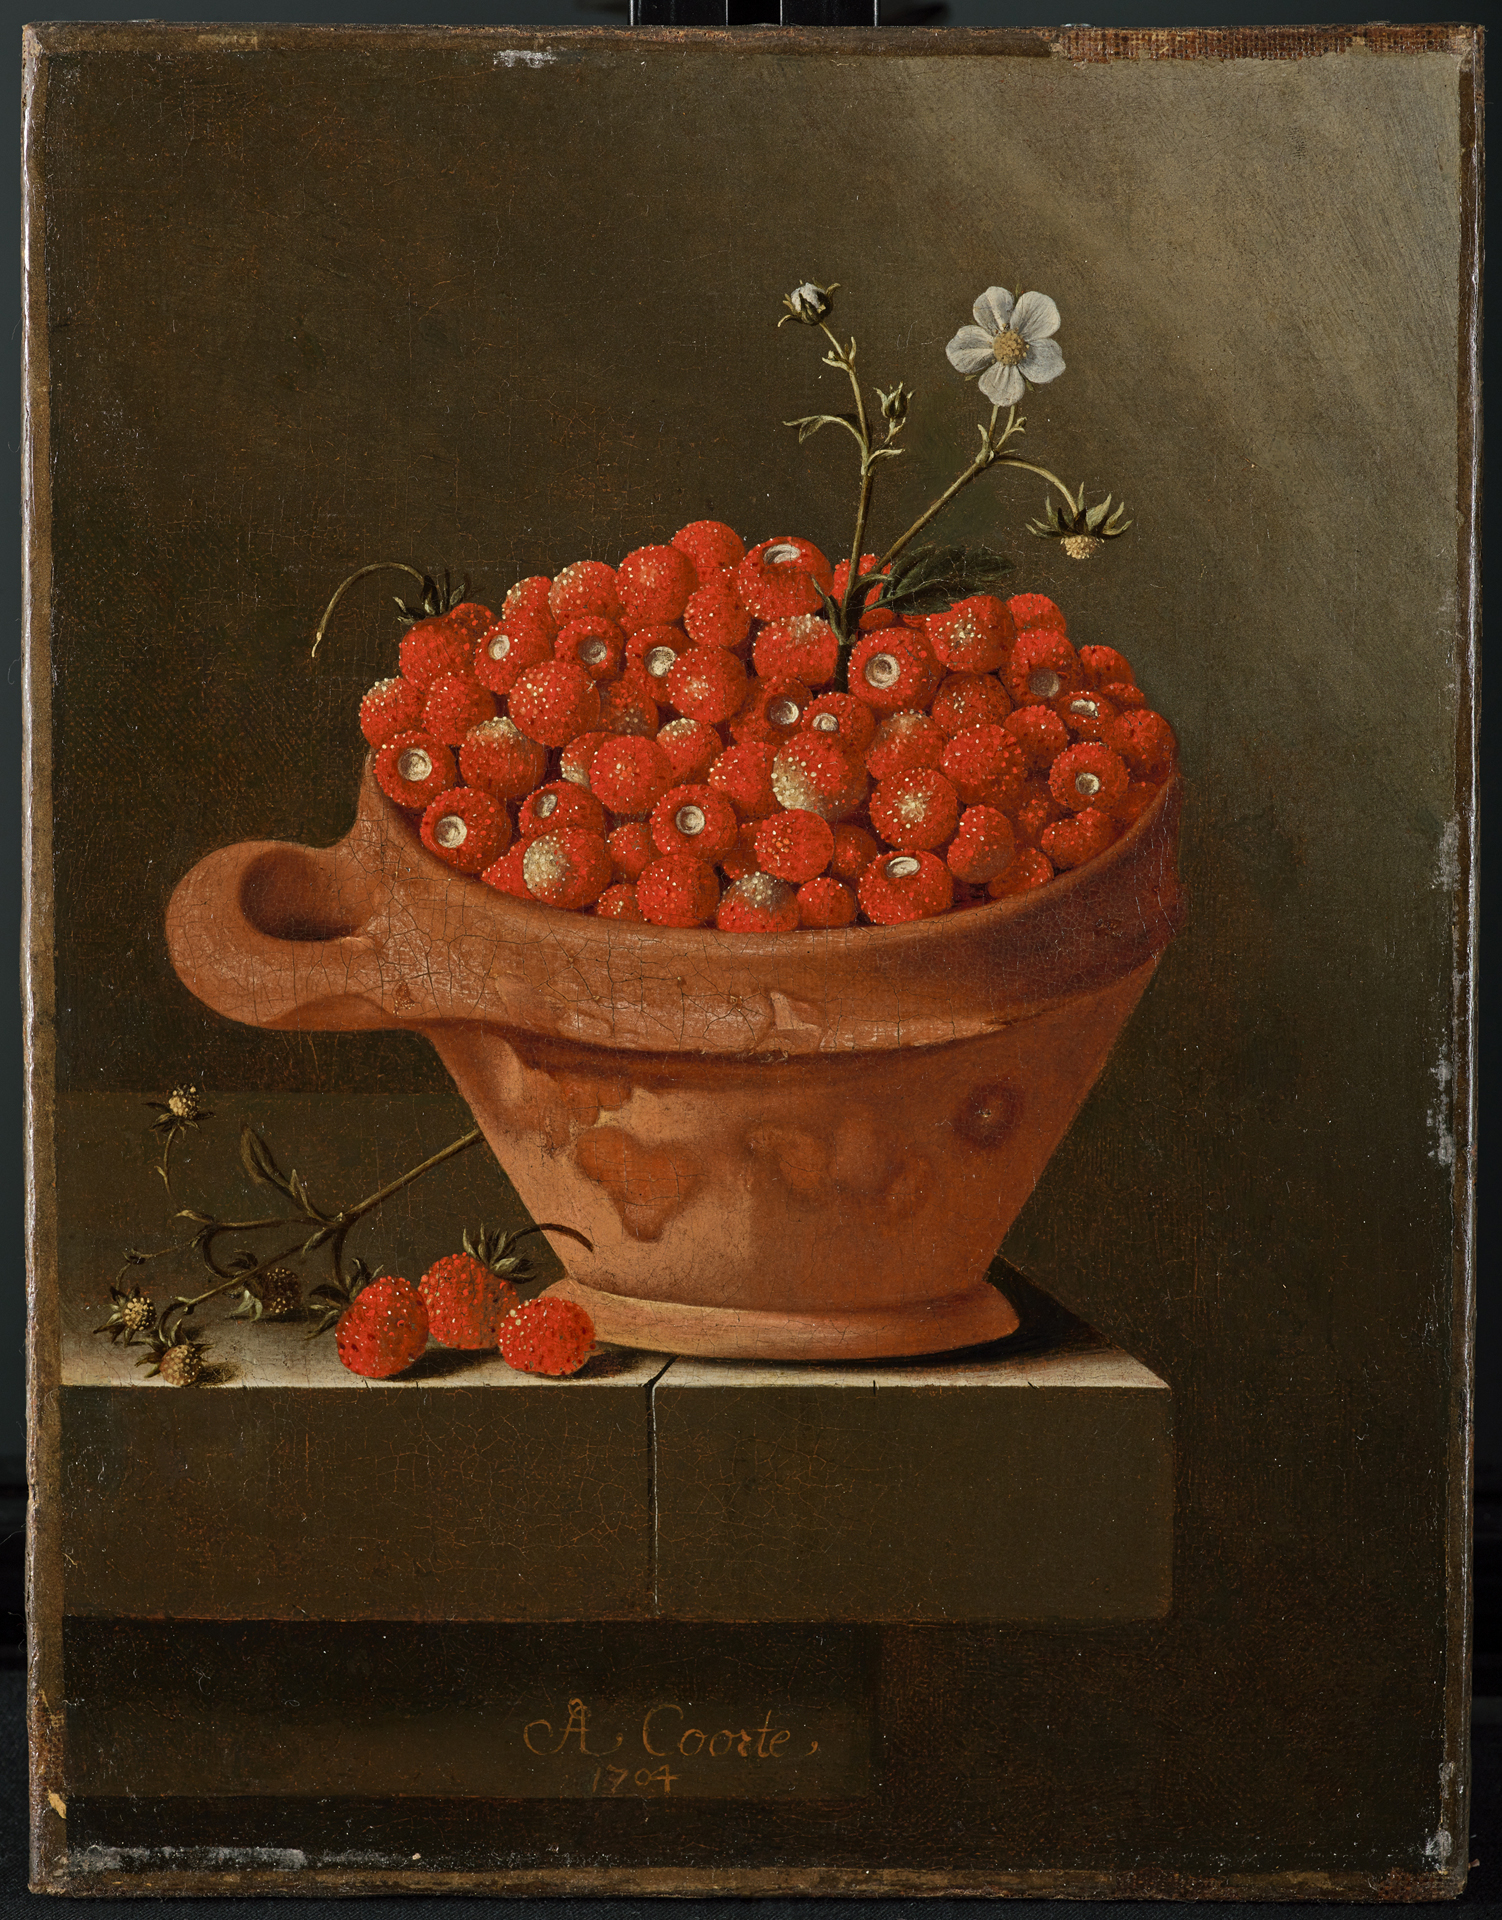 'Still life and landscapes of the Golden Age' at the ...